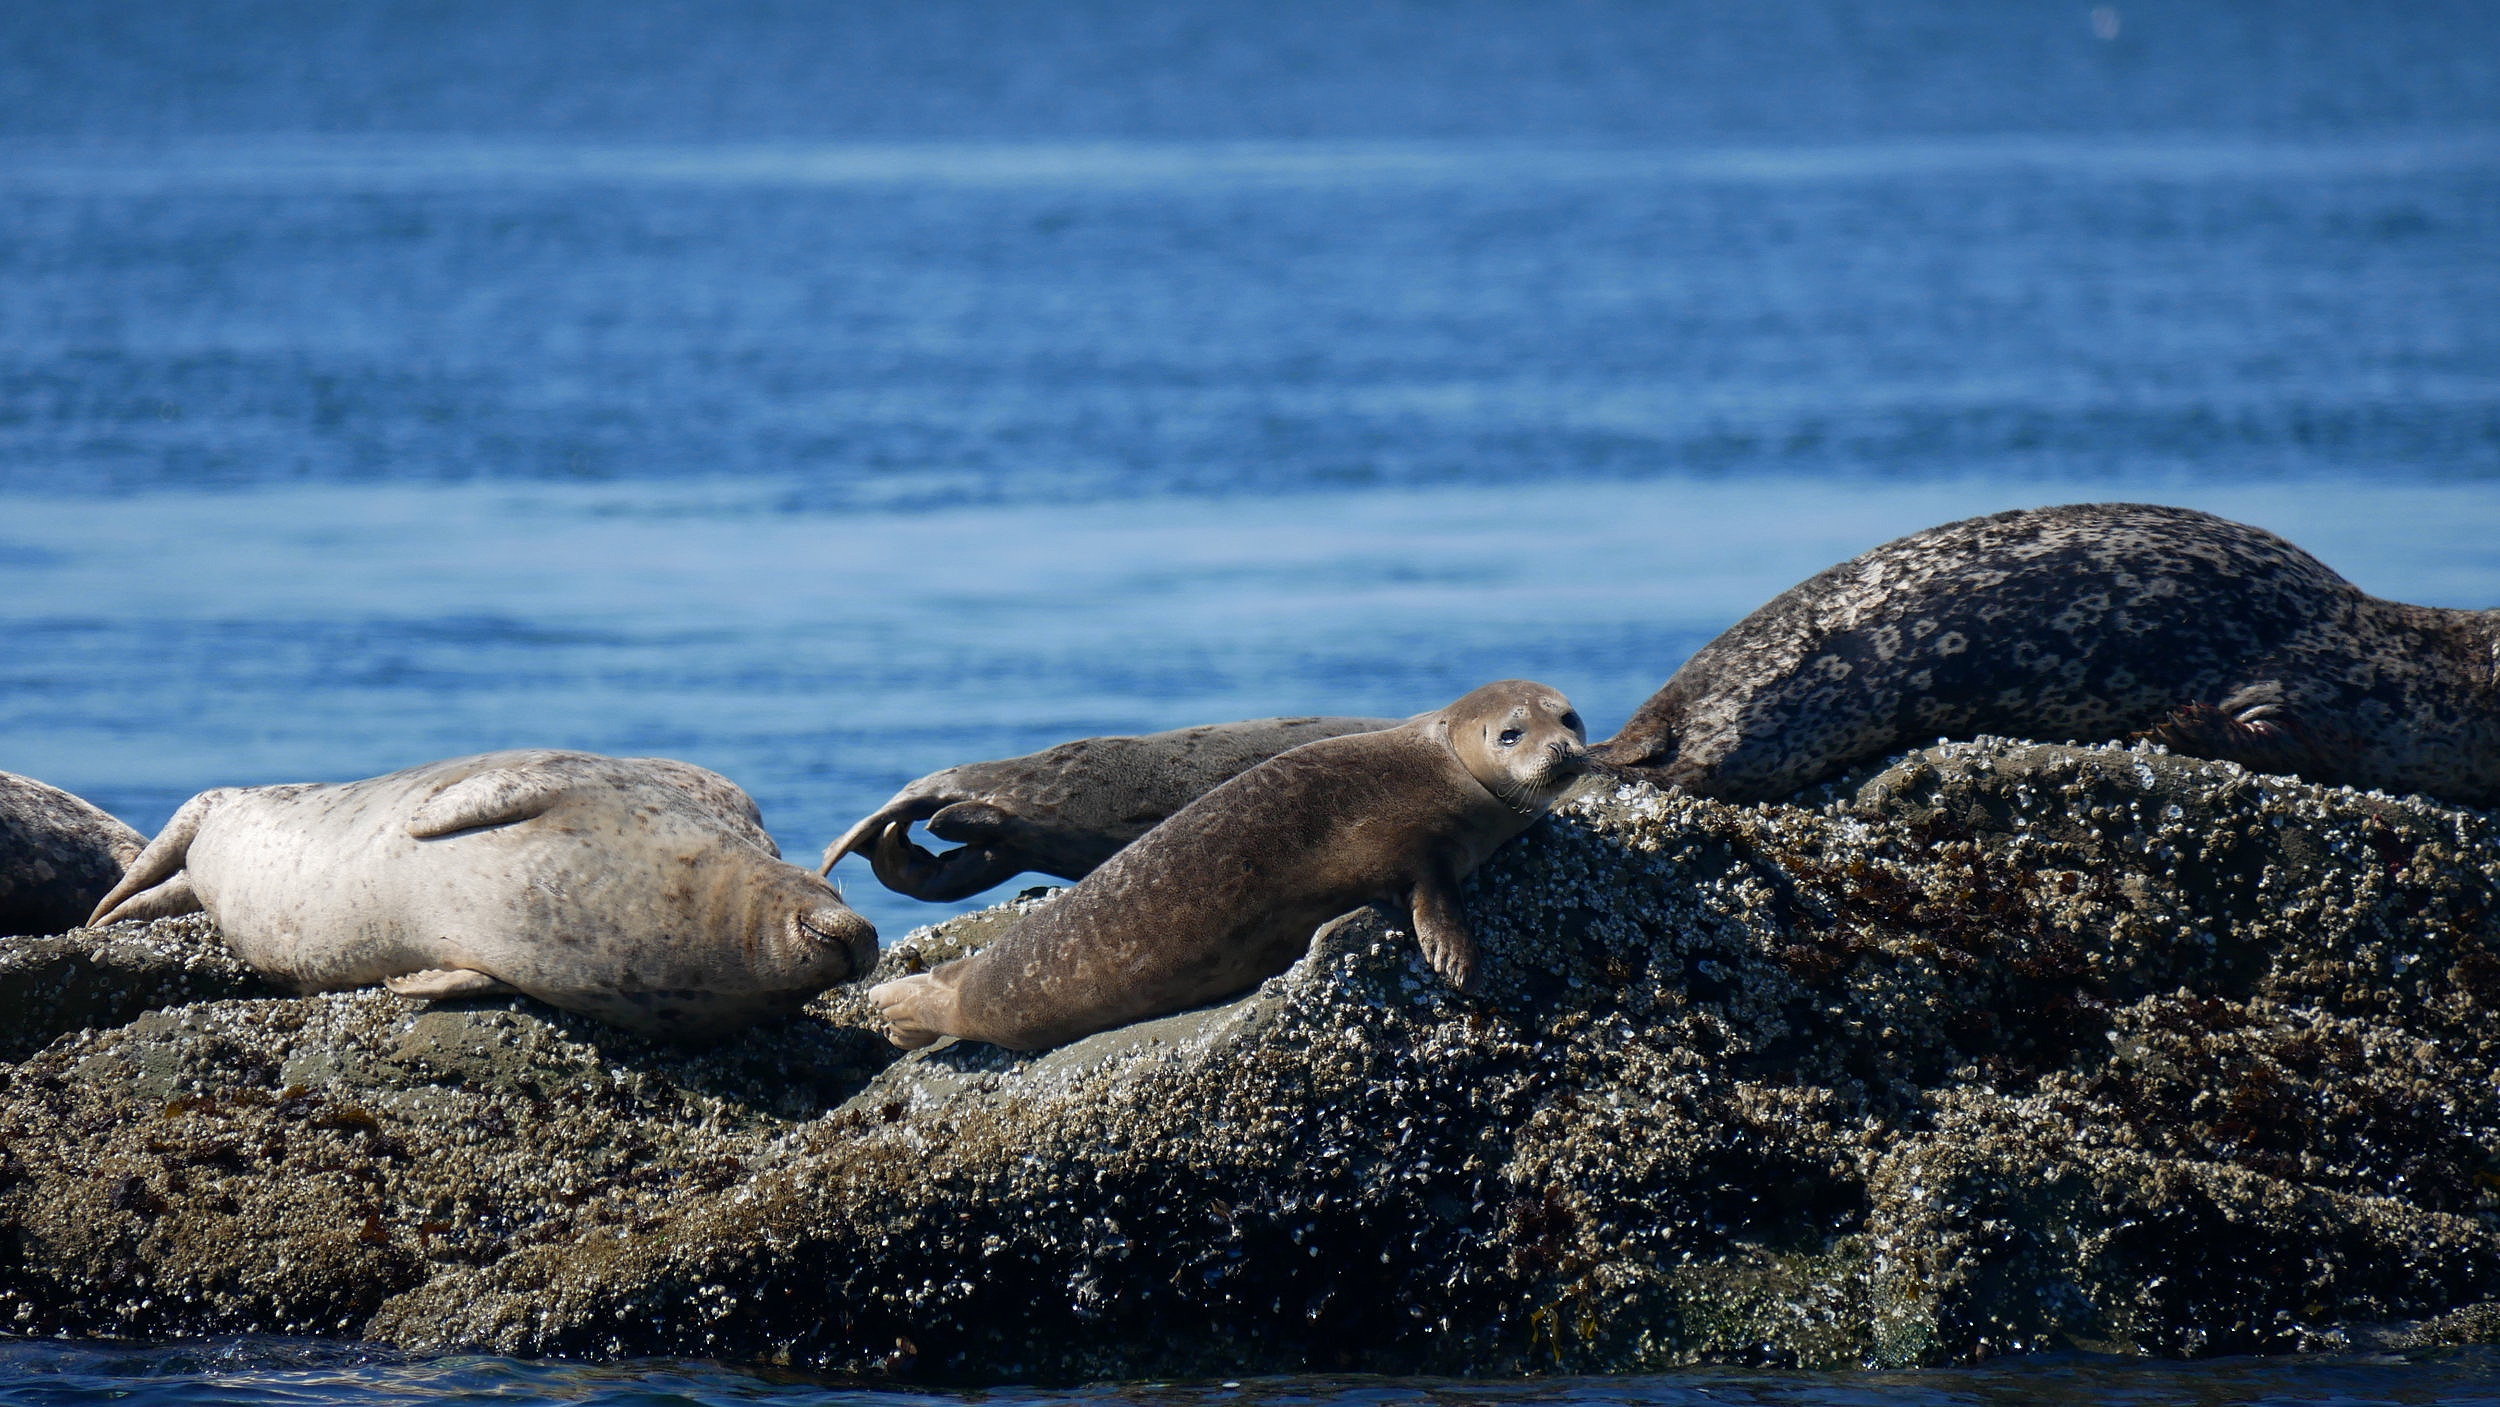 Harbour seals relaxing on the rocks. Photo by Rebeka Pirker (10:30).